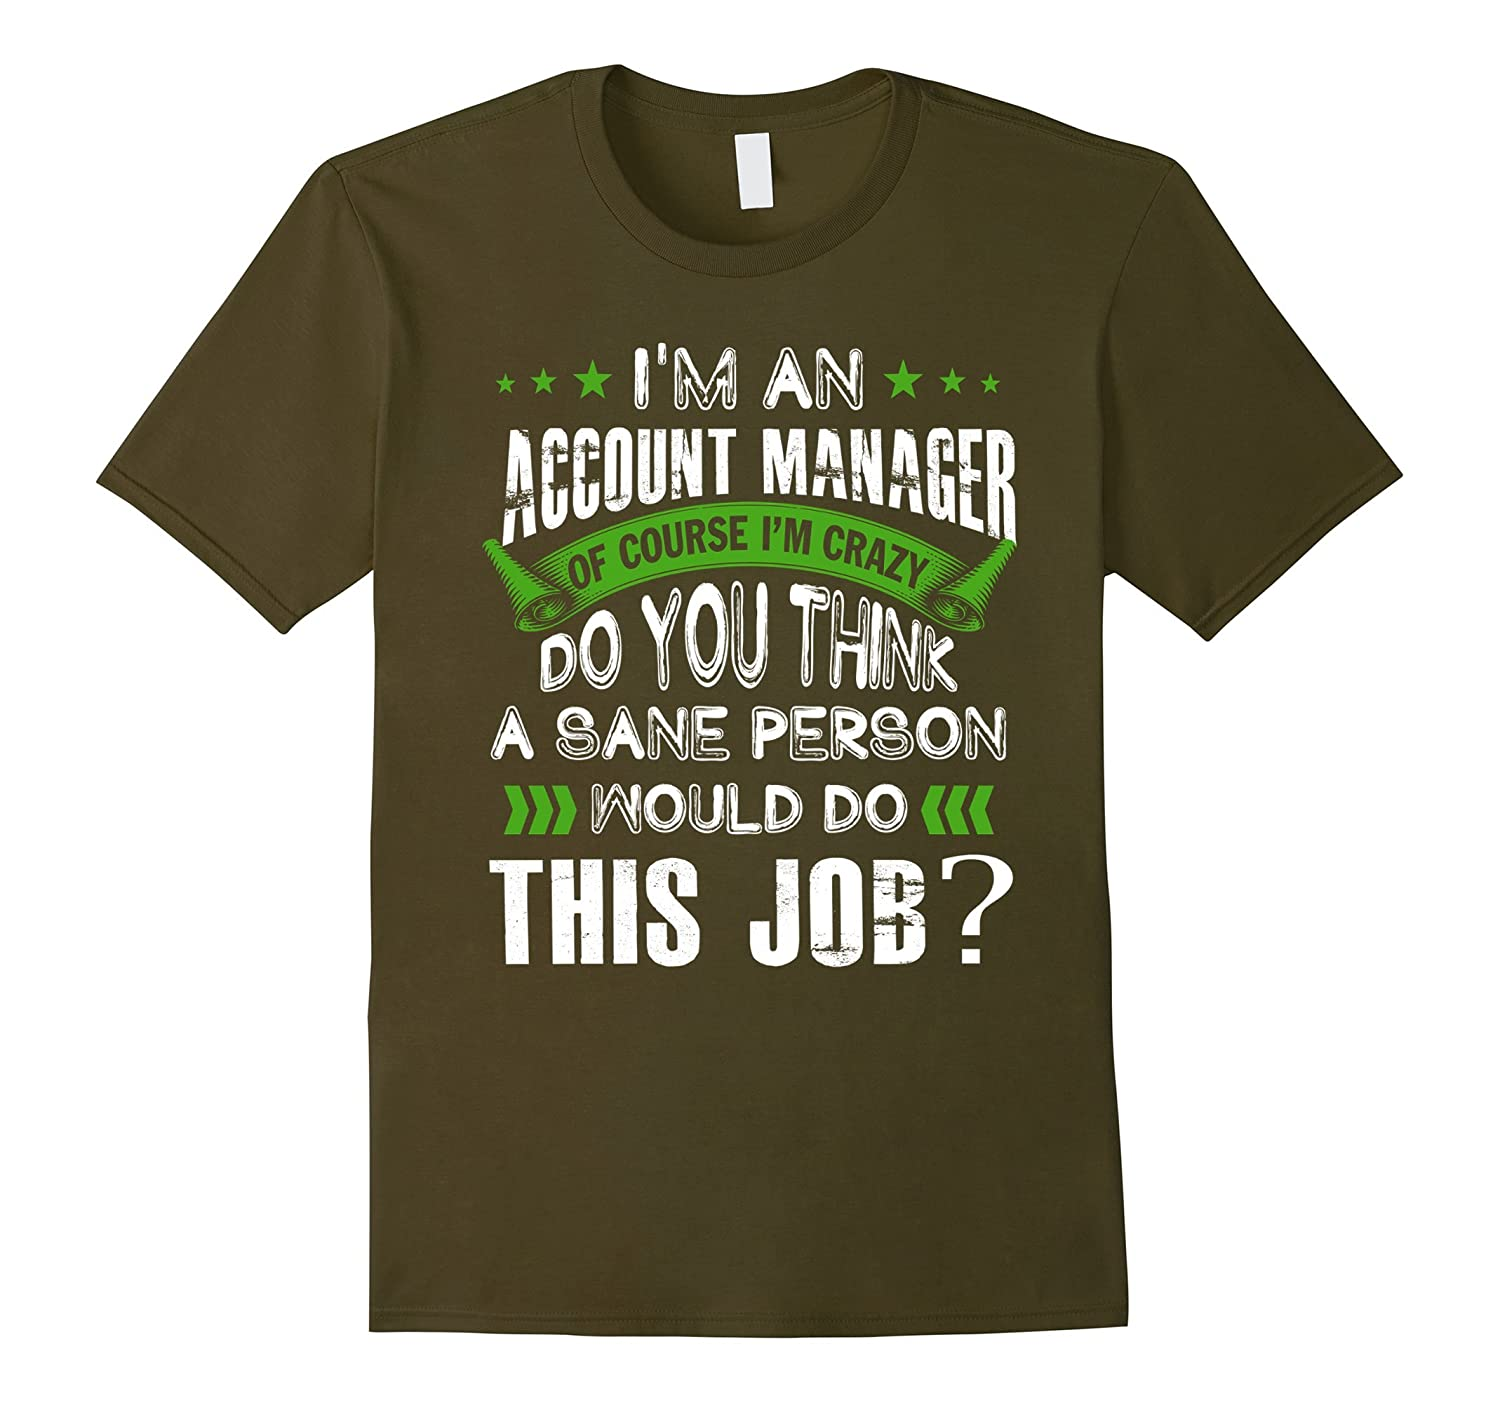 ACCOUNT MANAGER do you think a sane person would this job-TJ